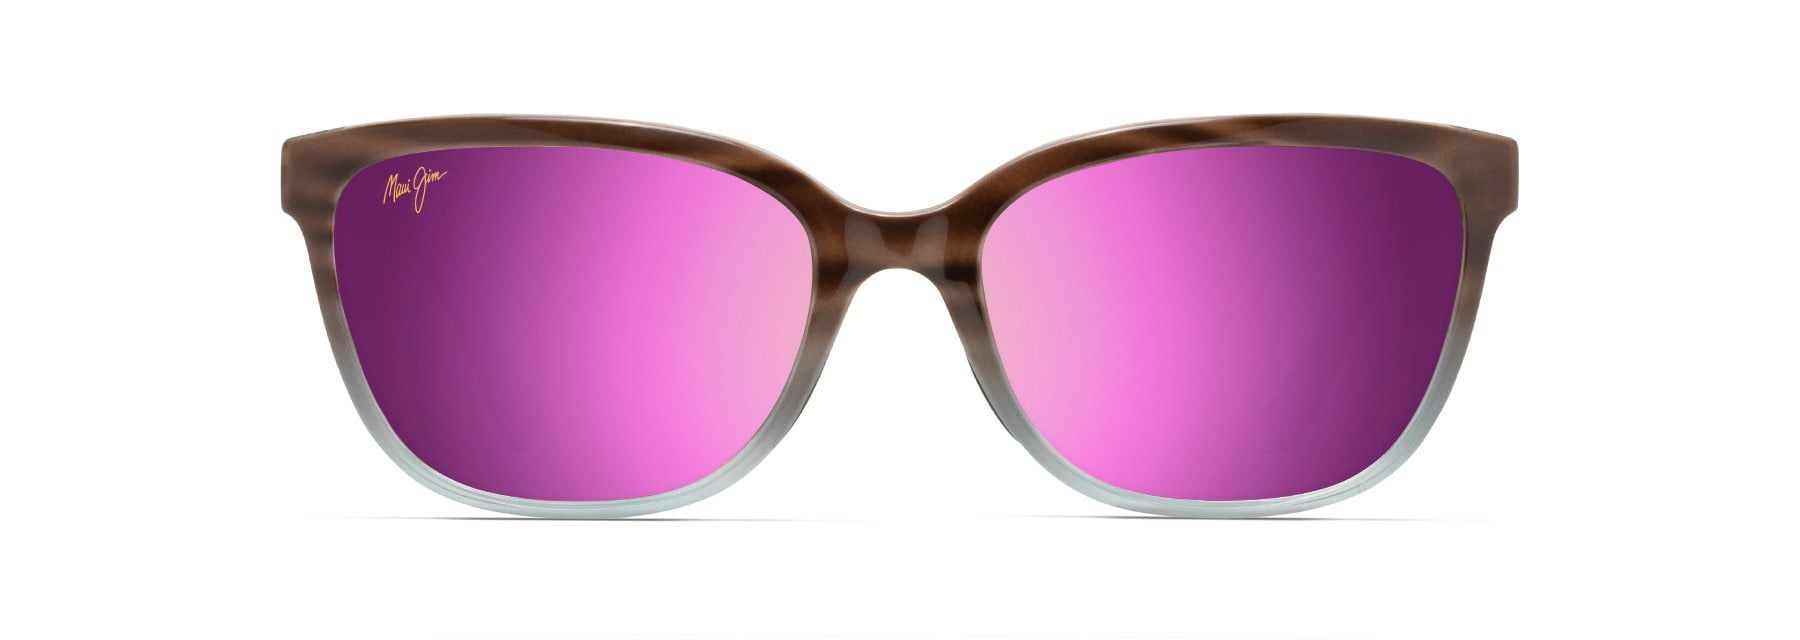 MyMaui Honi MM758-024 Sunglasses